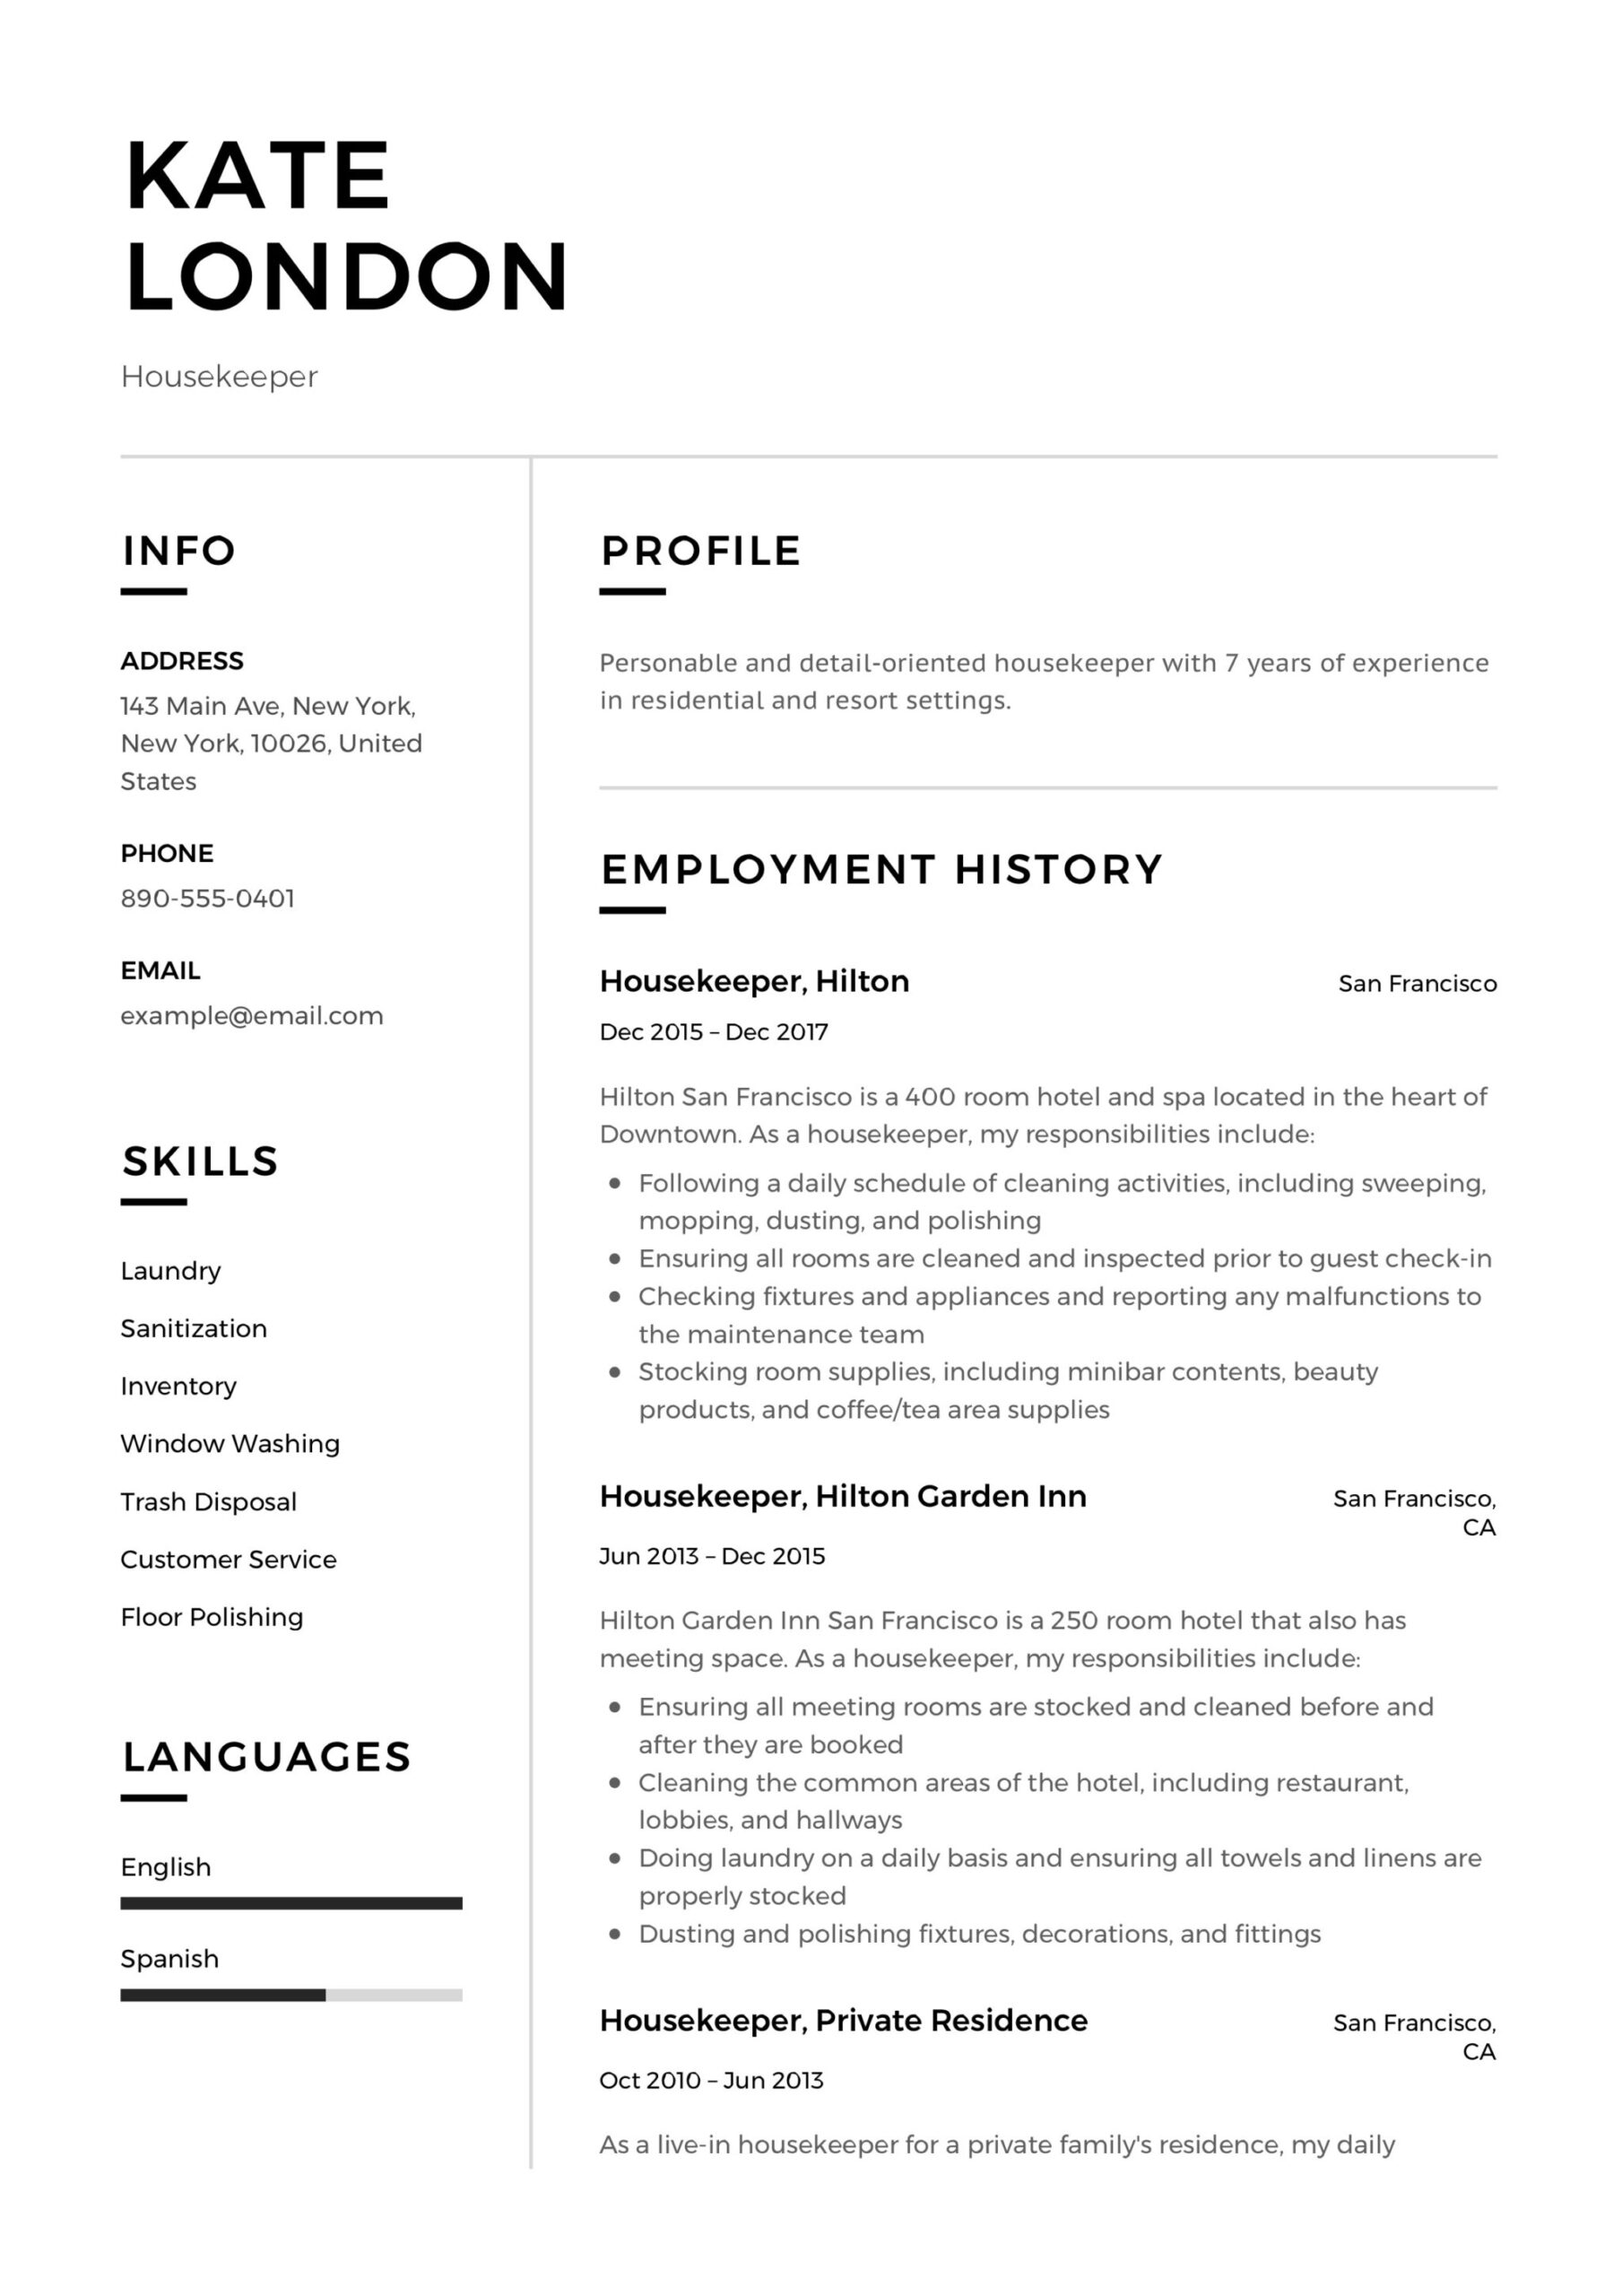 quality control specialist resume proactive synonym graphic design job description for Resume House Cleaning Job Description For Resume